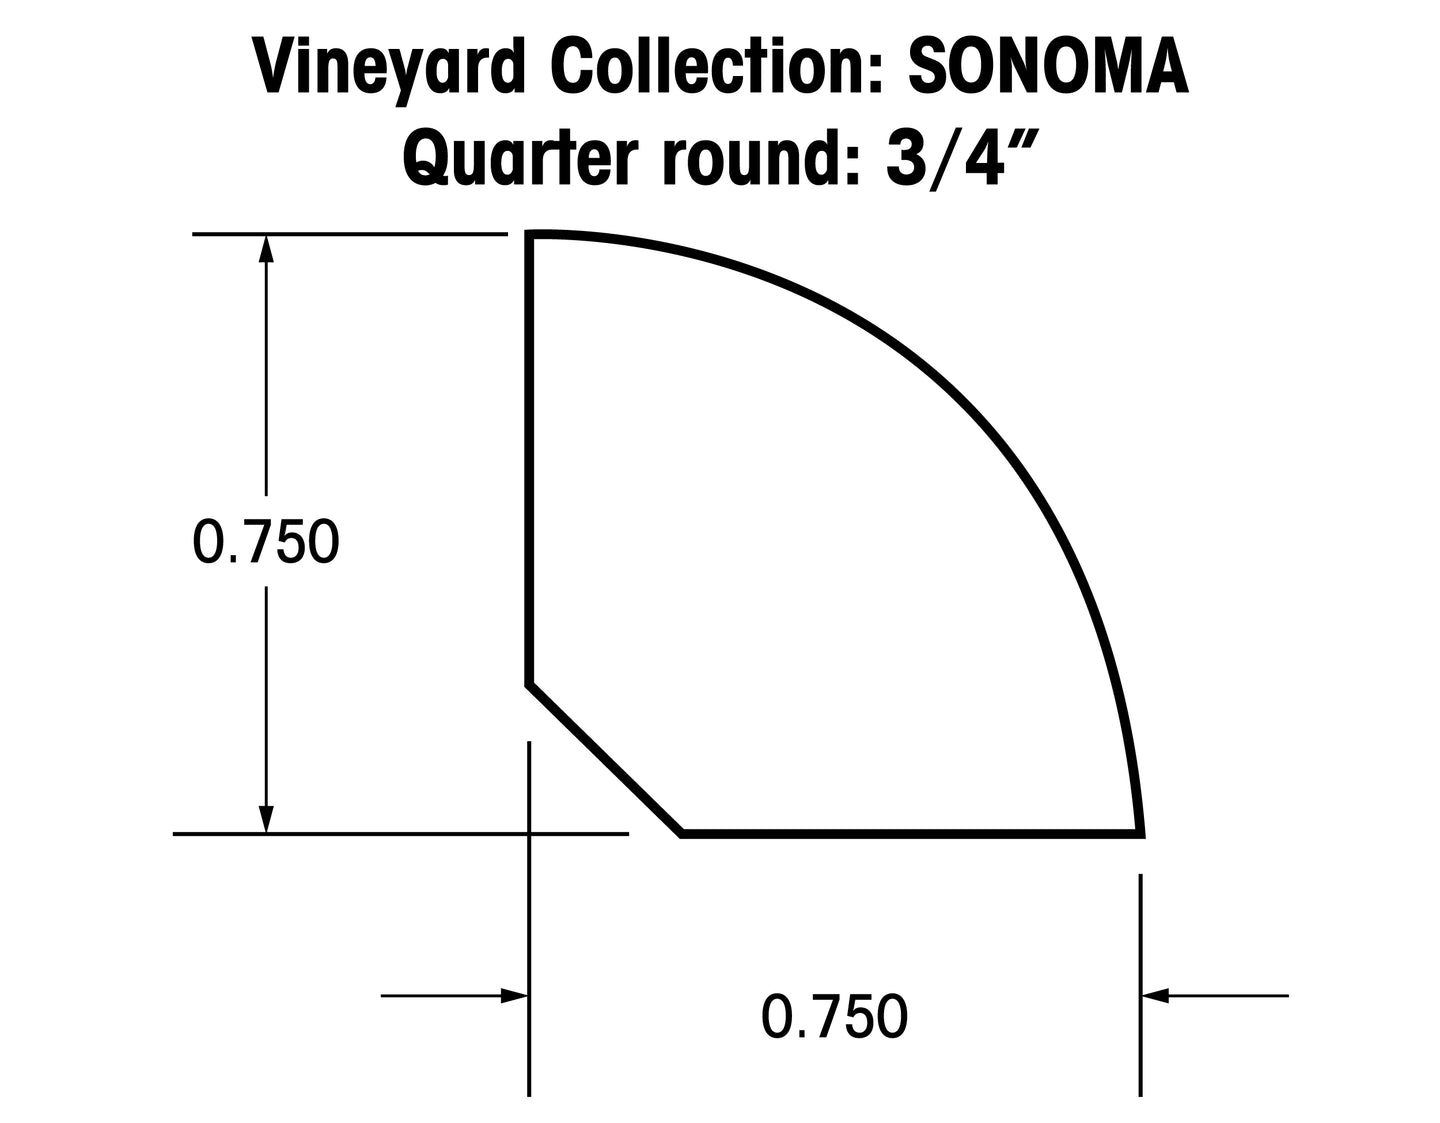 Quarter Round Moldings for the Vineyard Collection - Sonoma Series